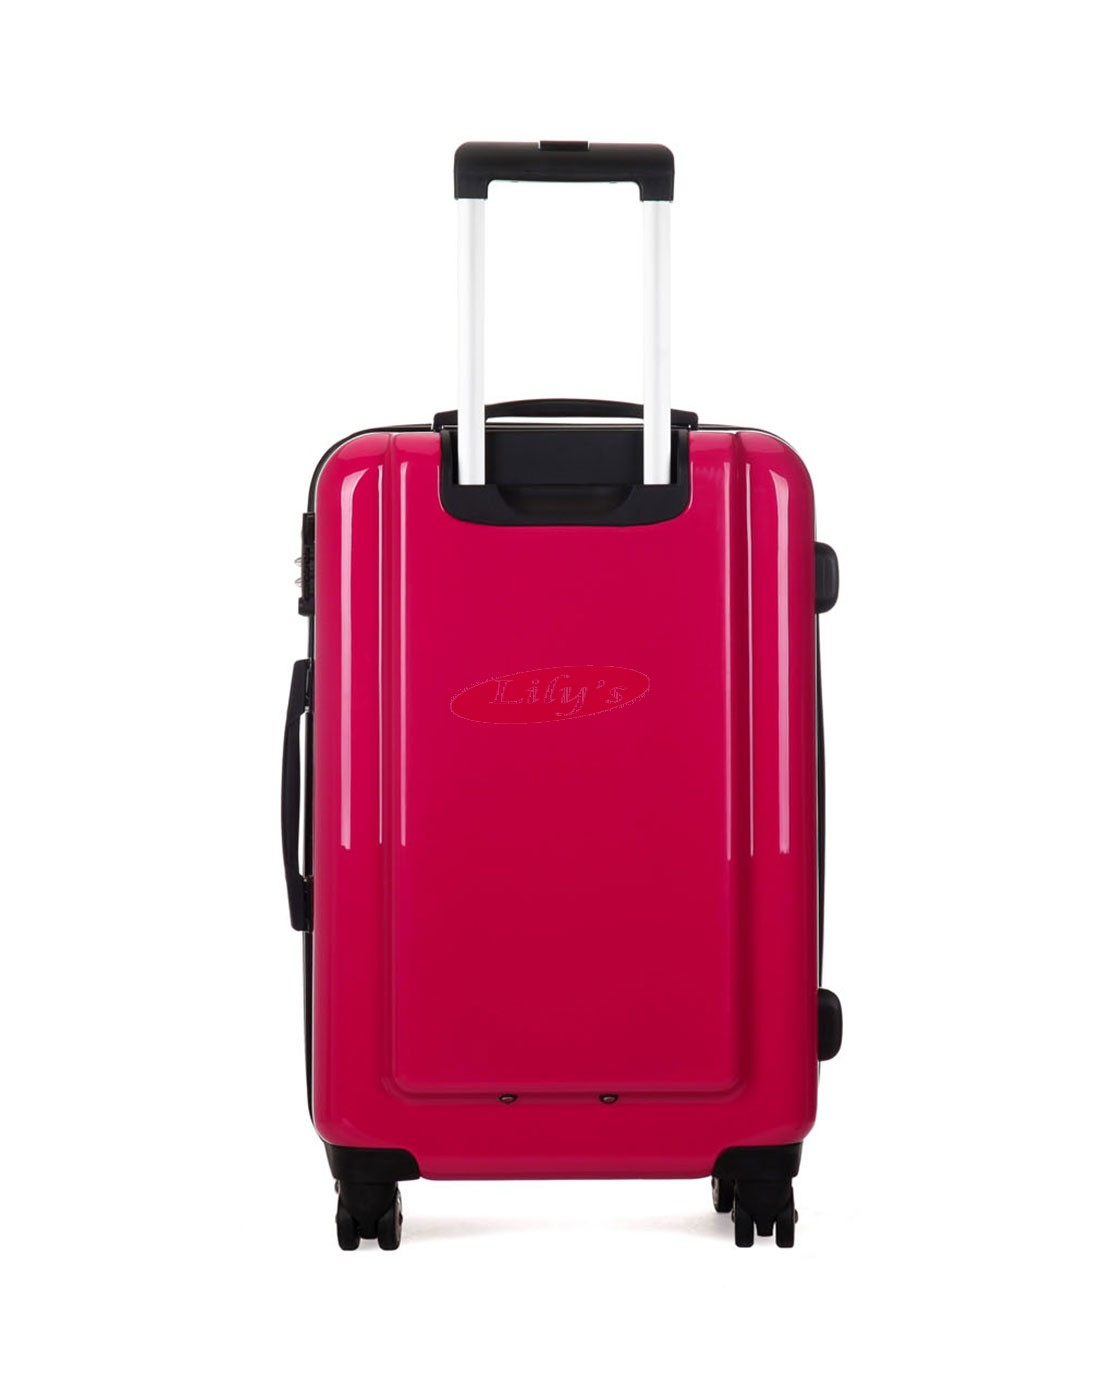 """AIRCROSS 3PC Set Luggage A55 Rose Hard Case Expandable Trolley Luggage - 20""""24""""&26"""""""